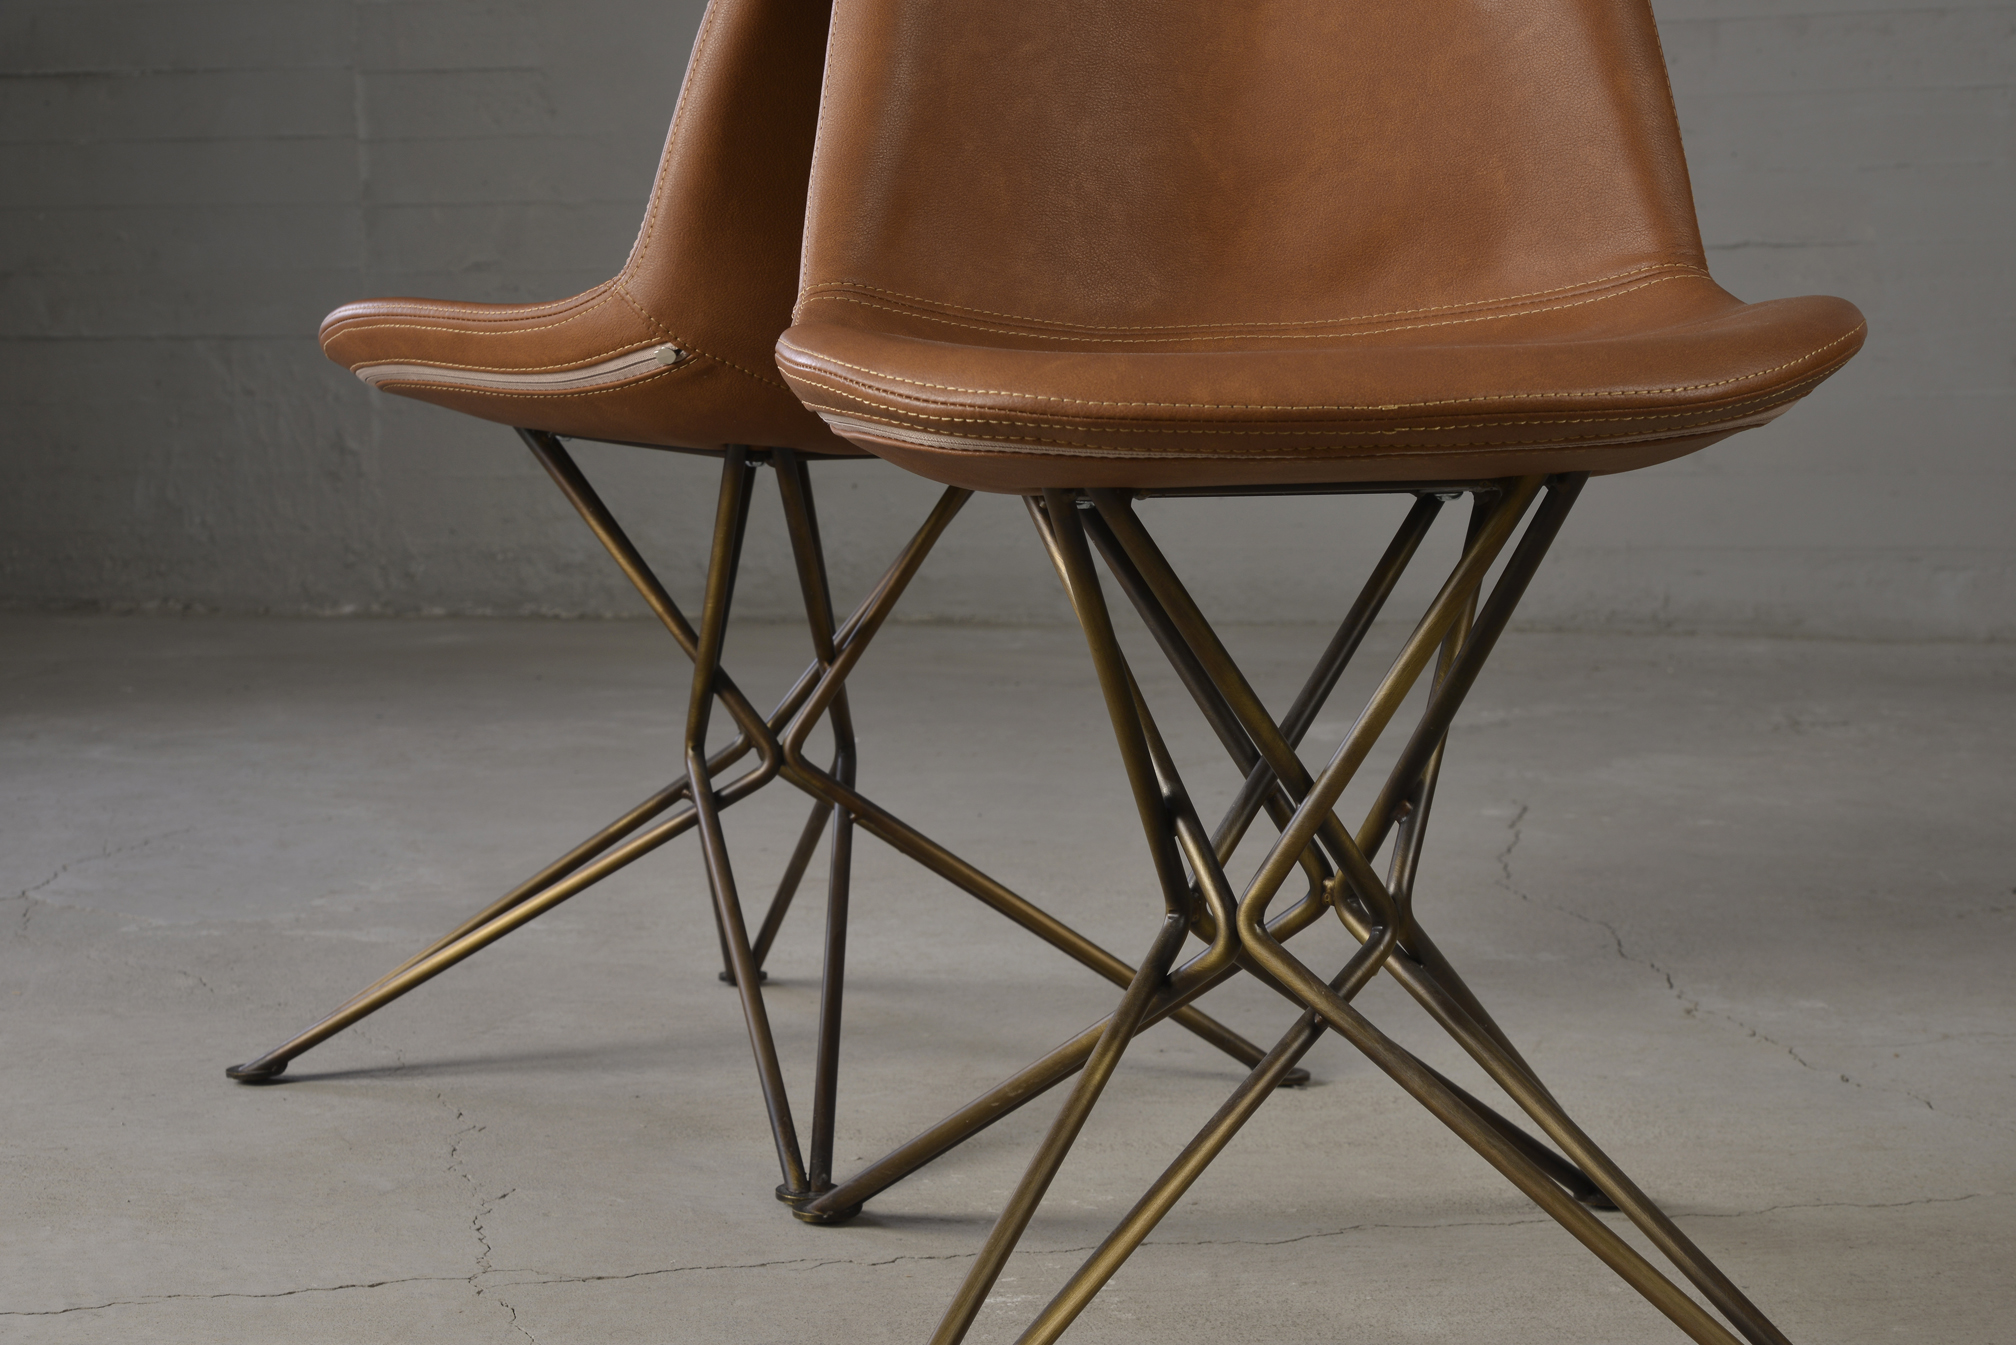 Dining Chairs - Designed to impress, made to last.